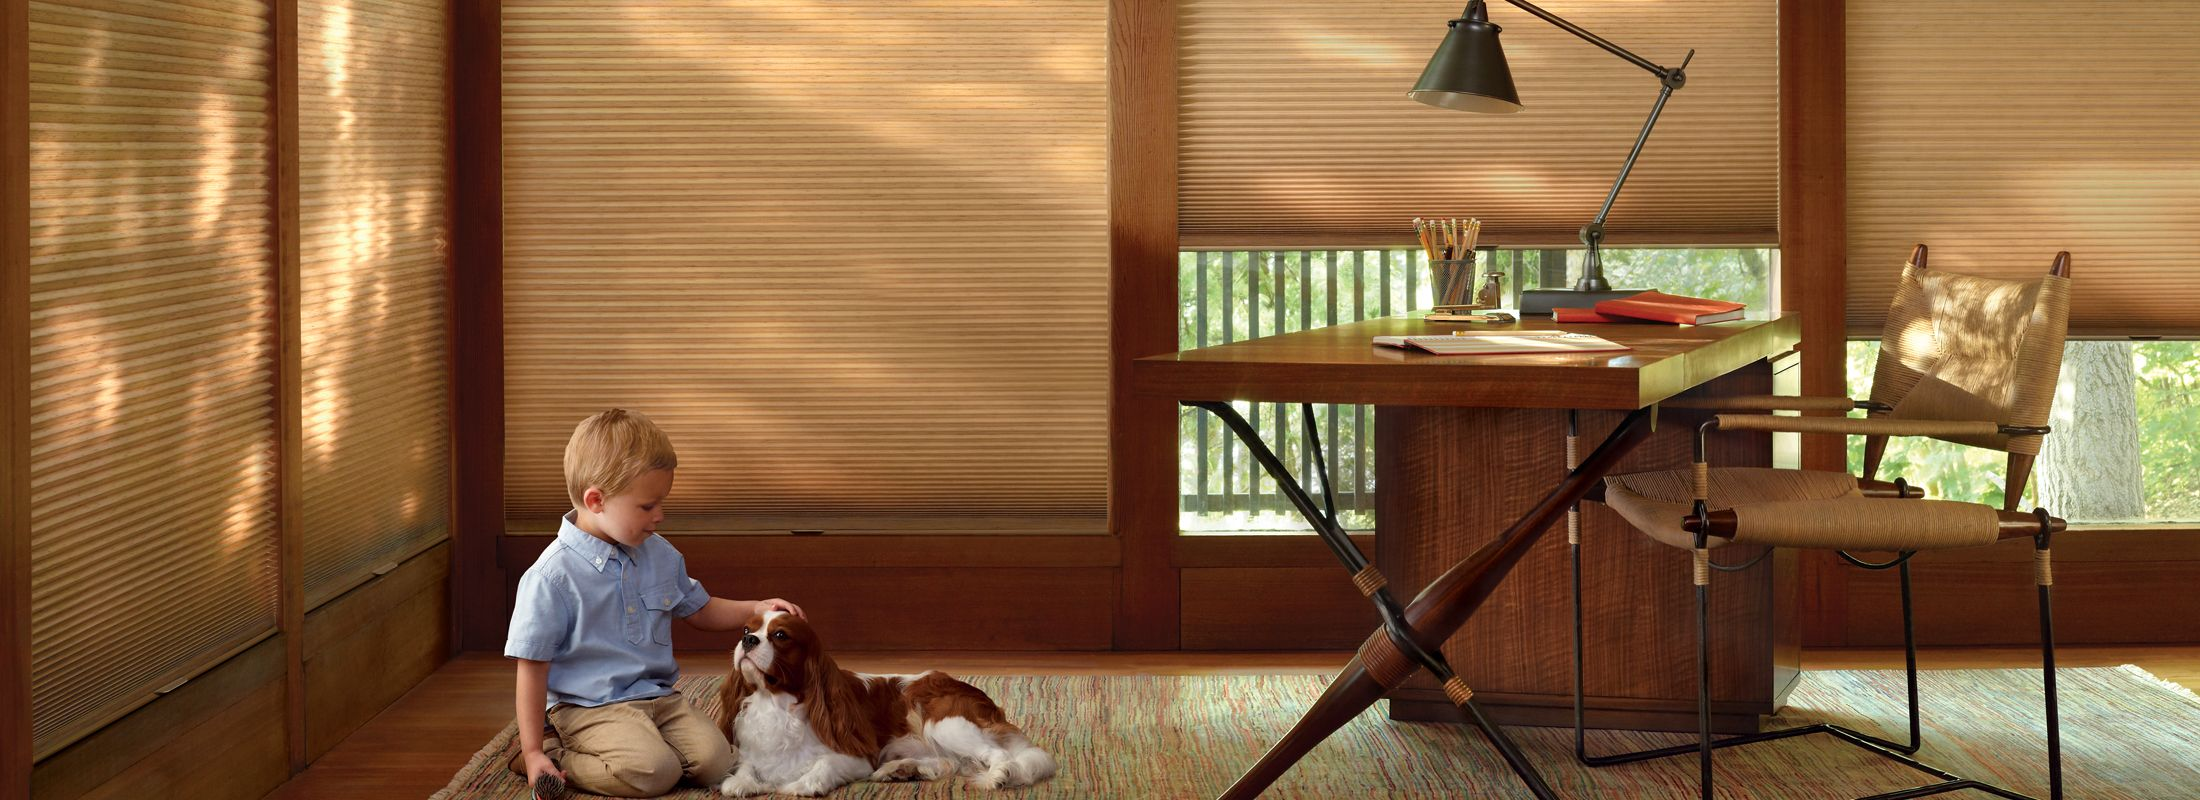 Cellular Shades In India Silk Tiger Eye   Duette ...